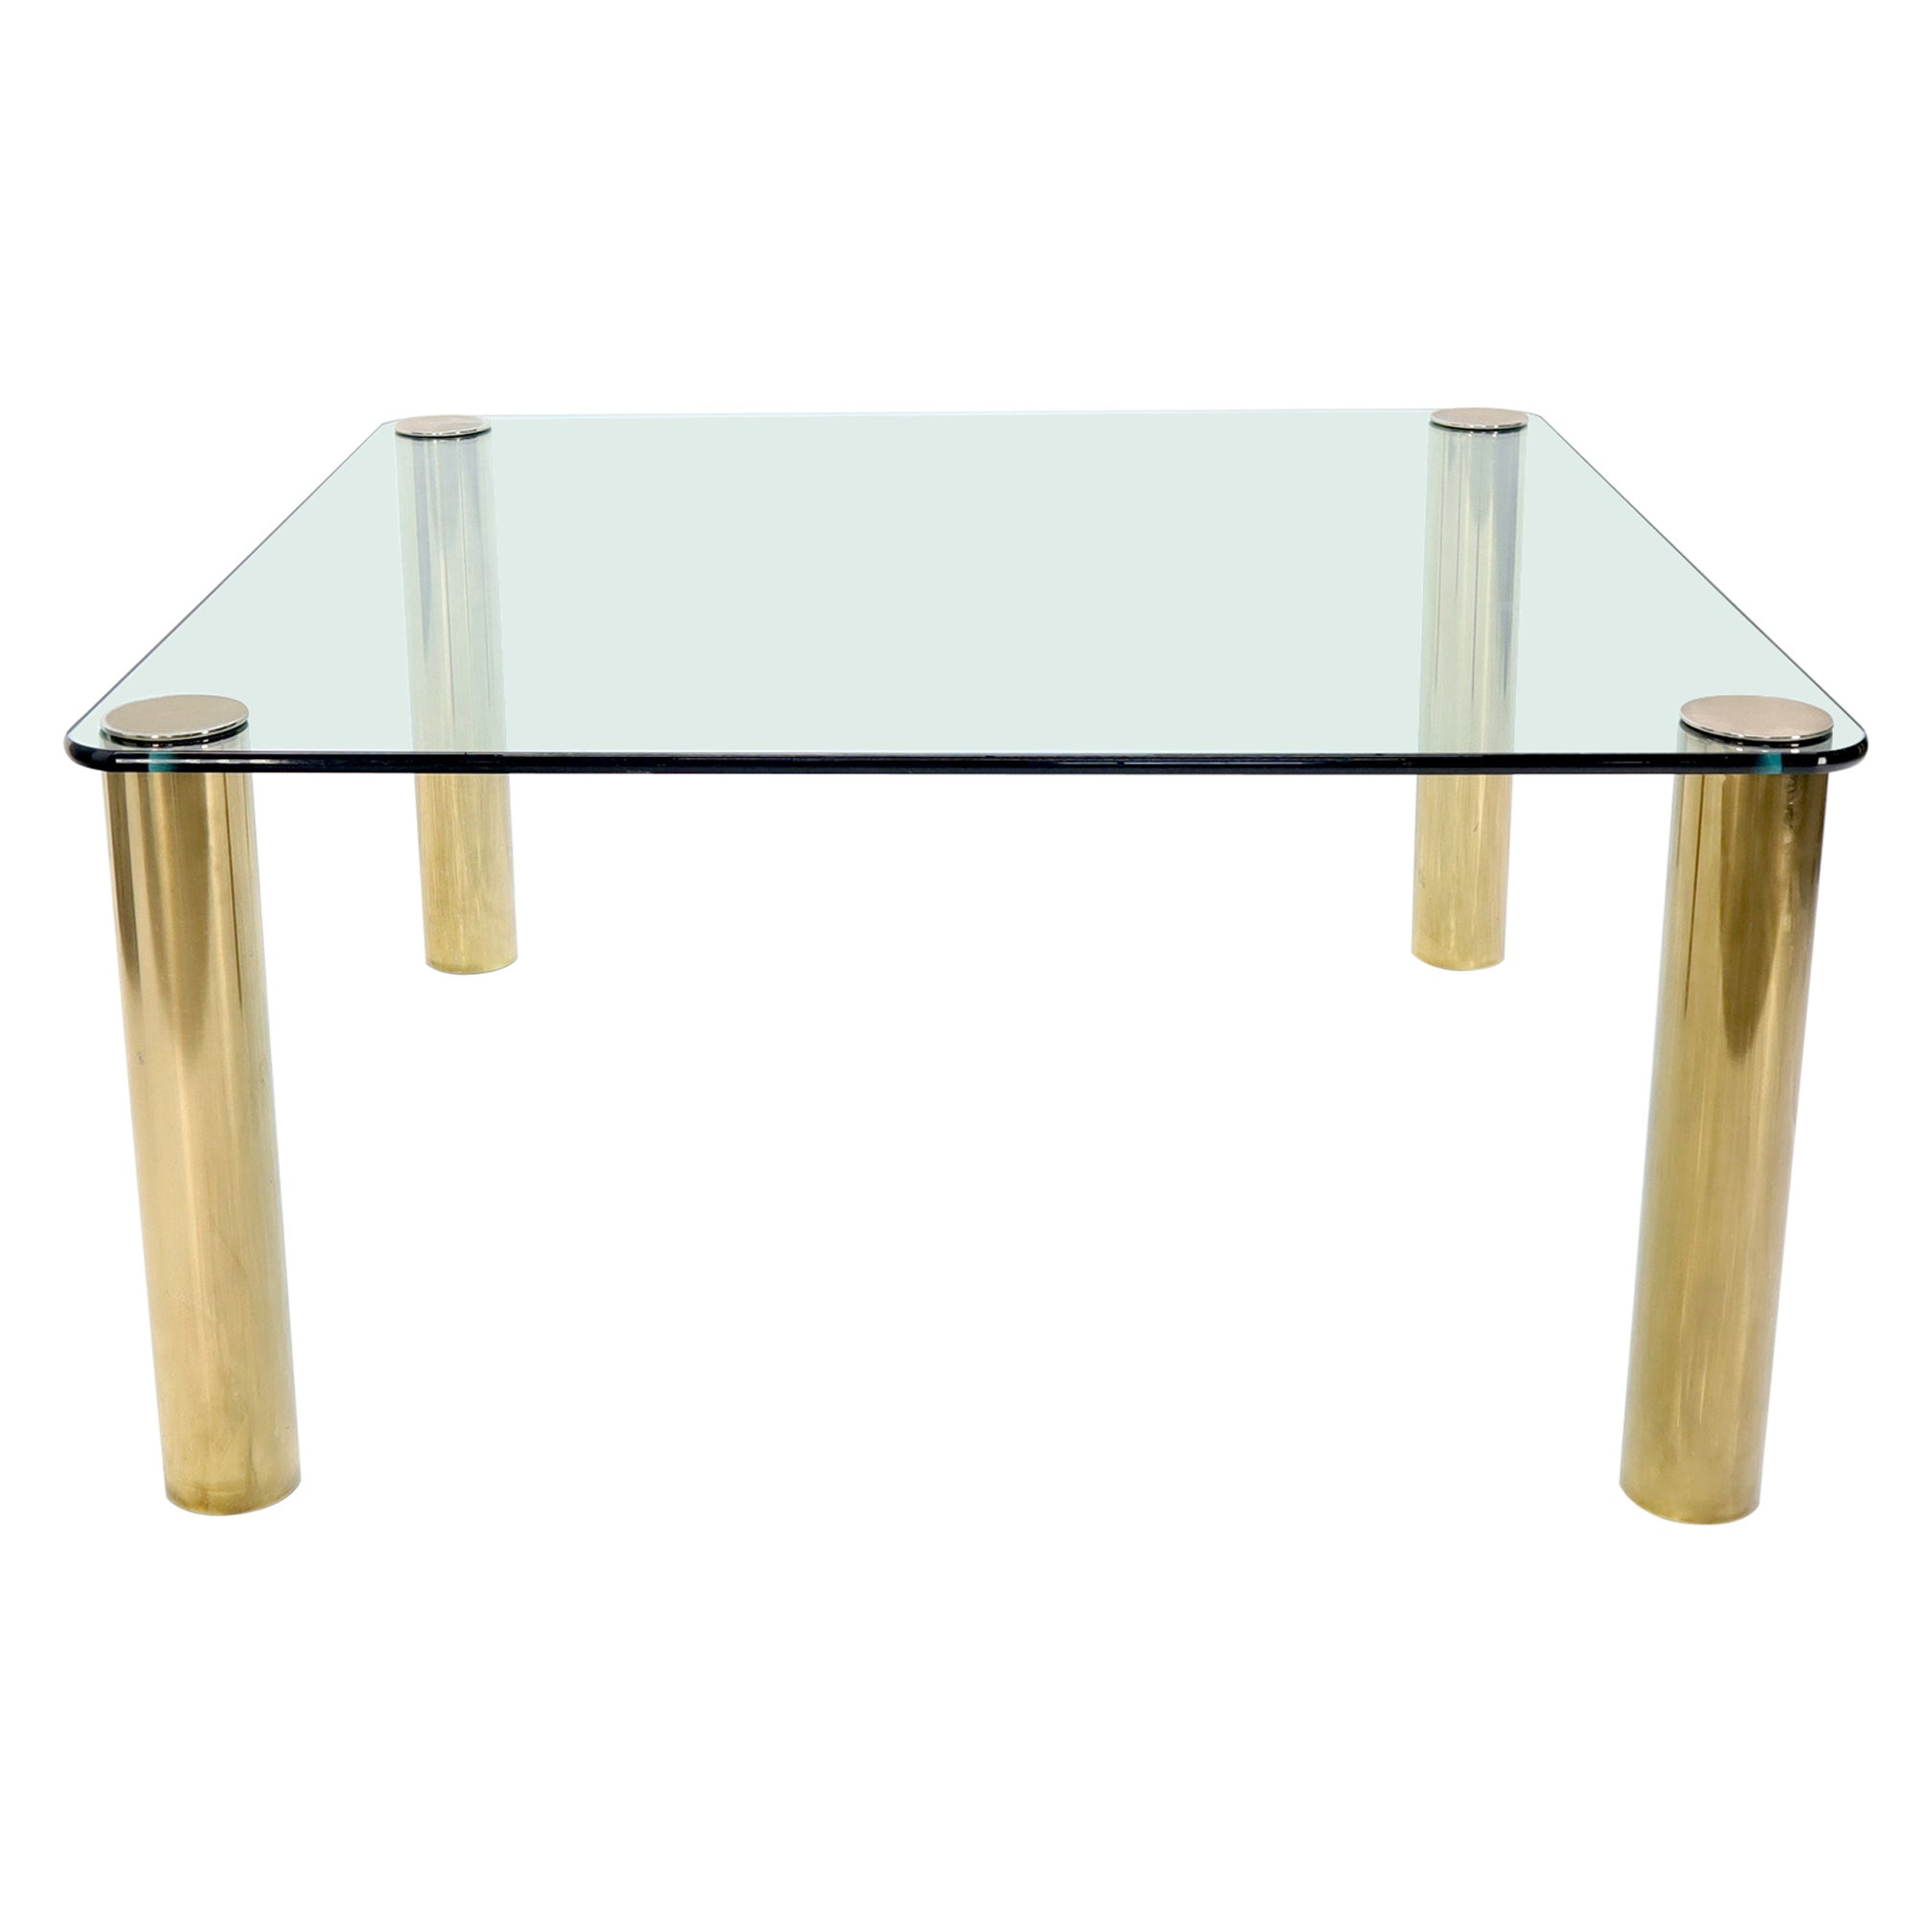 Large Square Thick Glass Top Dining Table on Brass Cylinder Legs